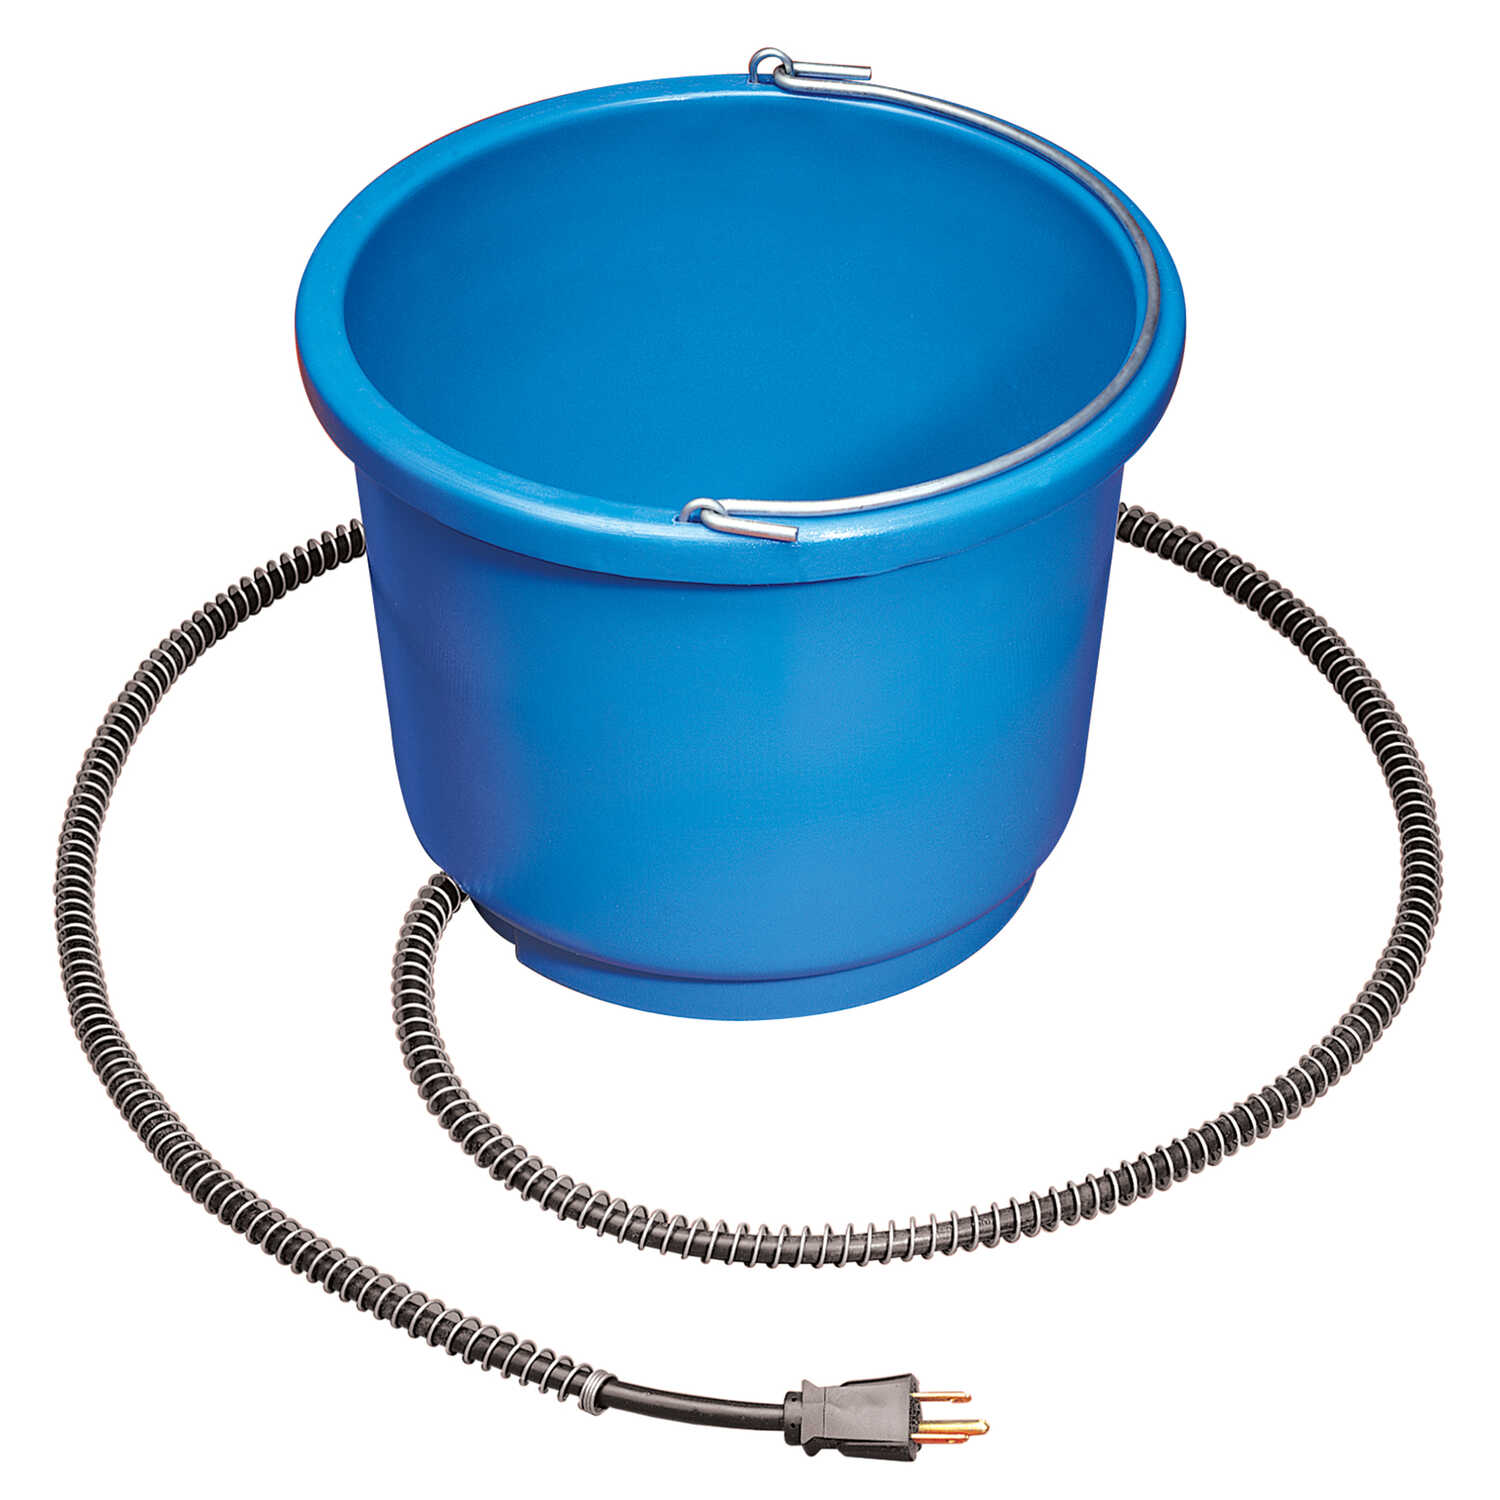 API  288 oz. Heated Bucket  For Livestock